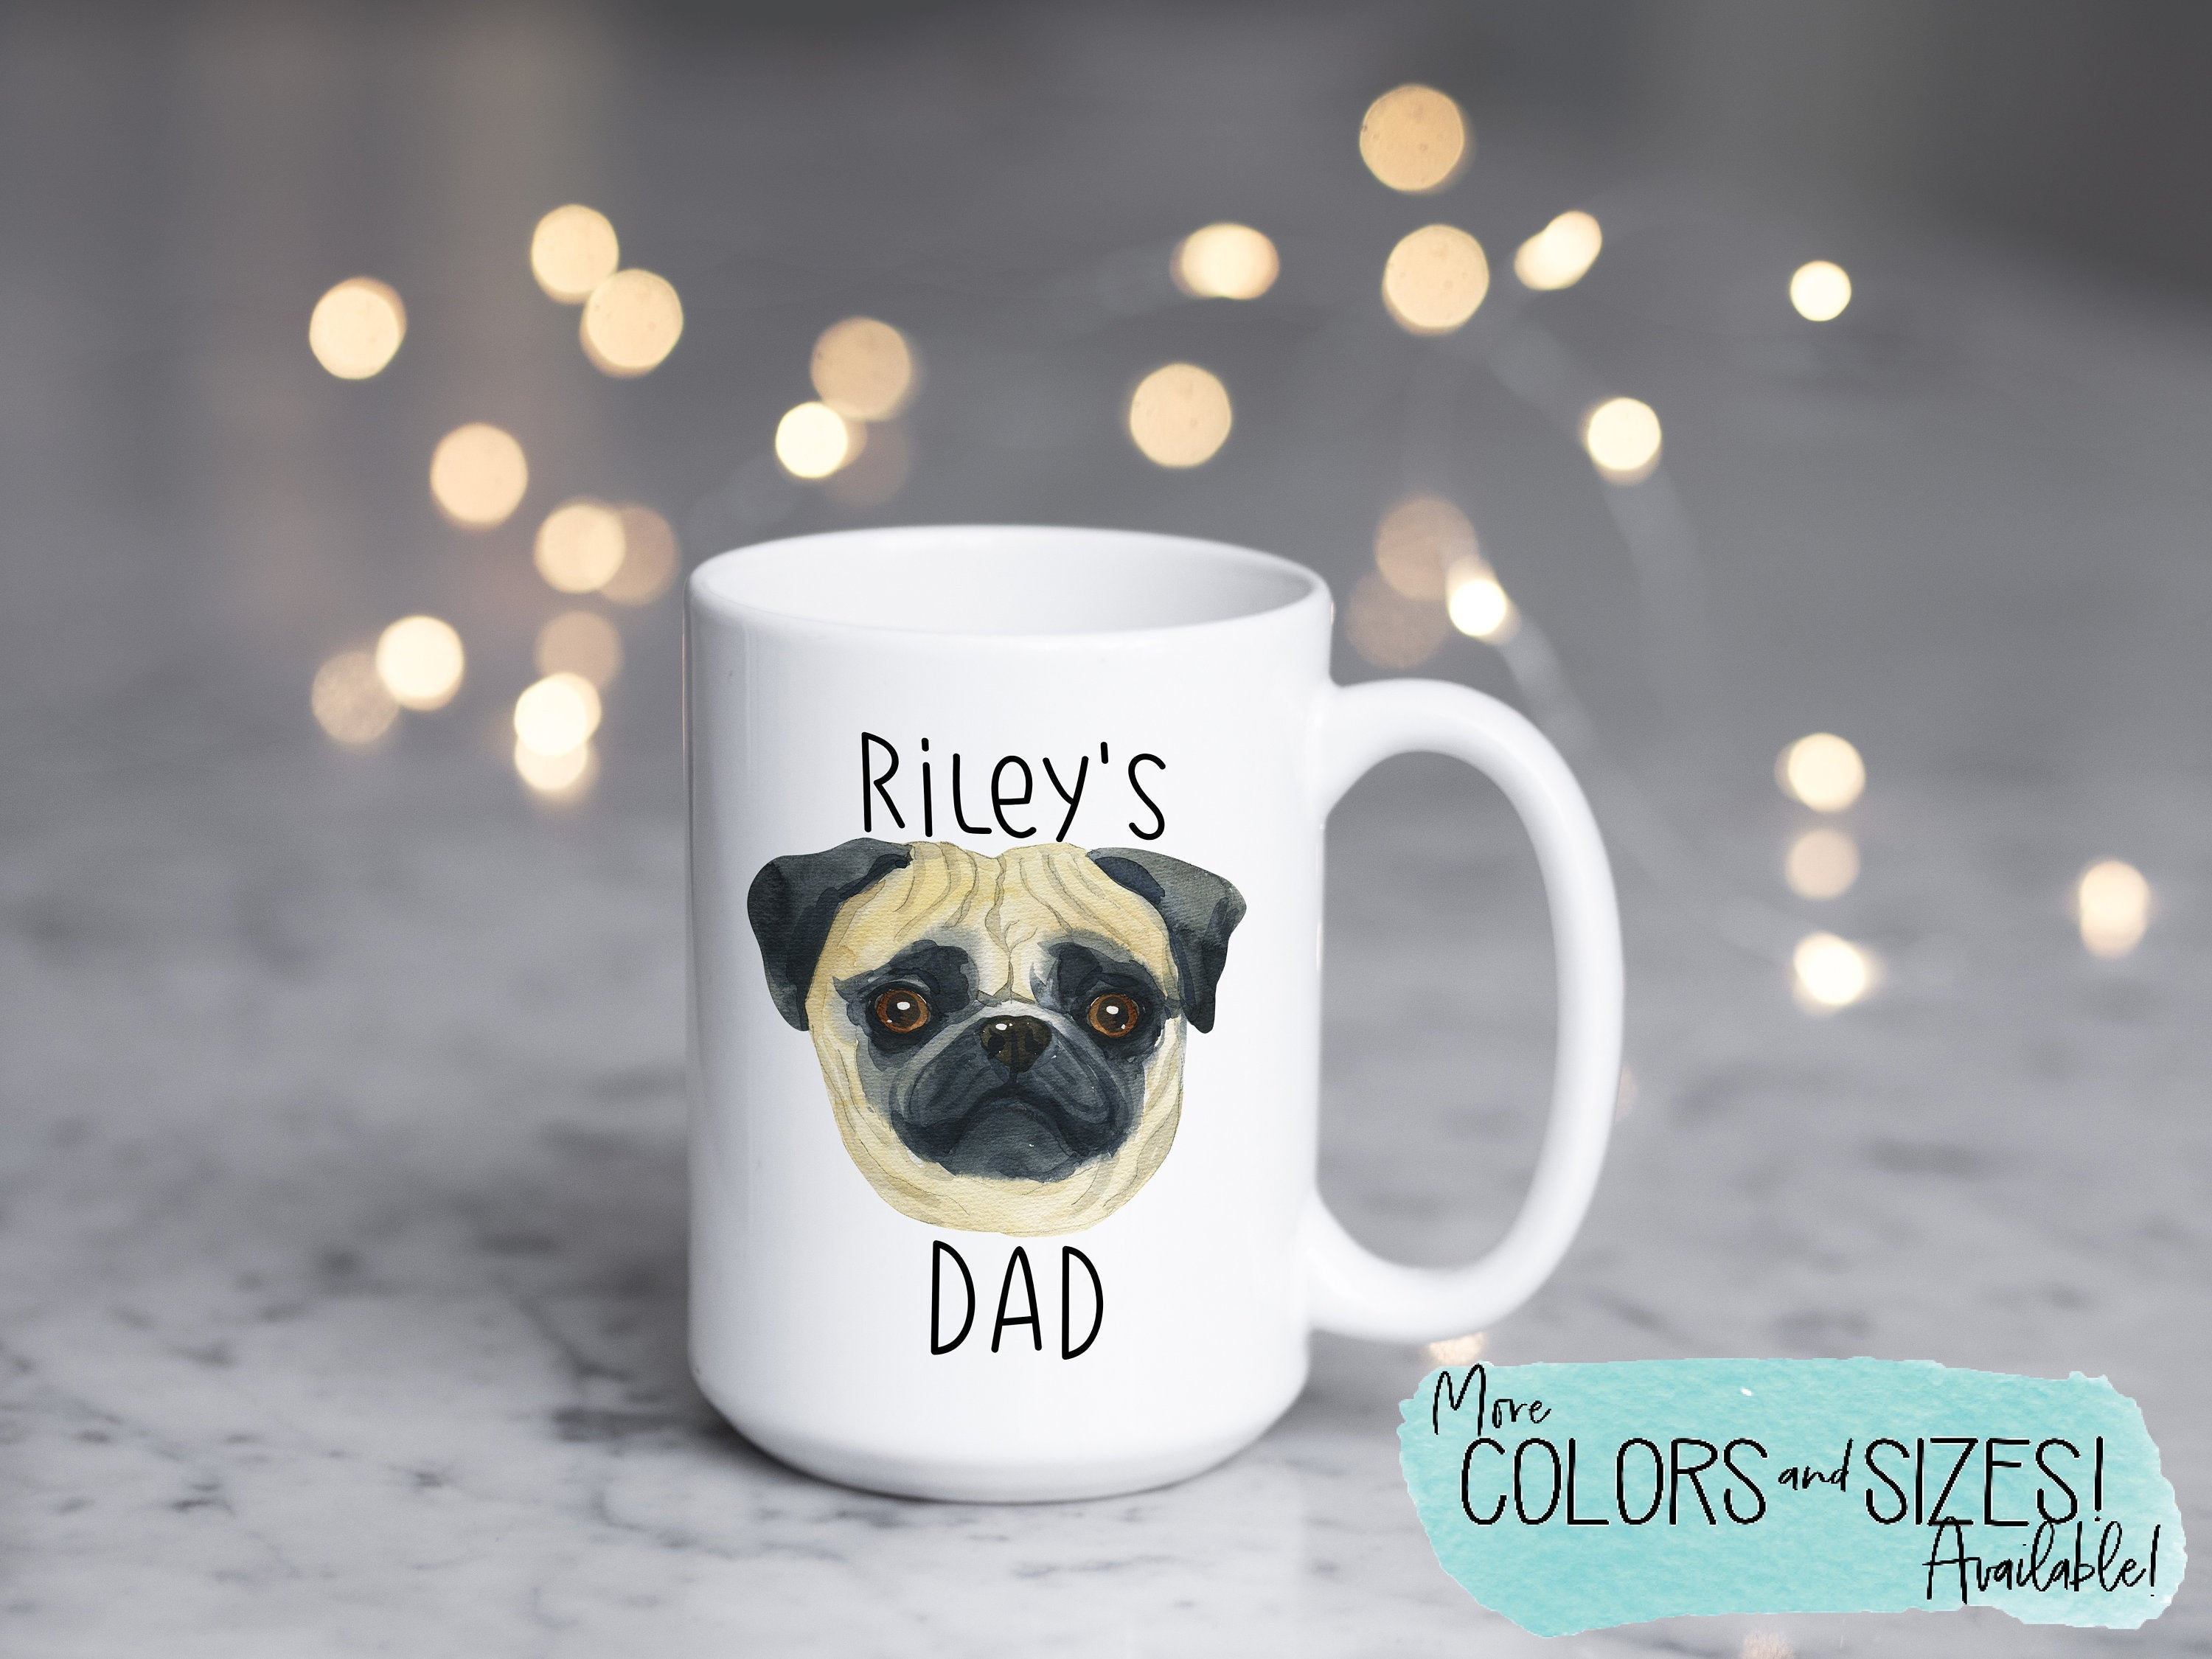 Personalized Dog Dad Gift, Custom Pug Mug, Dog Lover Gift, Gifts for Dog Dad, Personalized Dog Coffee Mug, Cute Pet Gift for Him S065